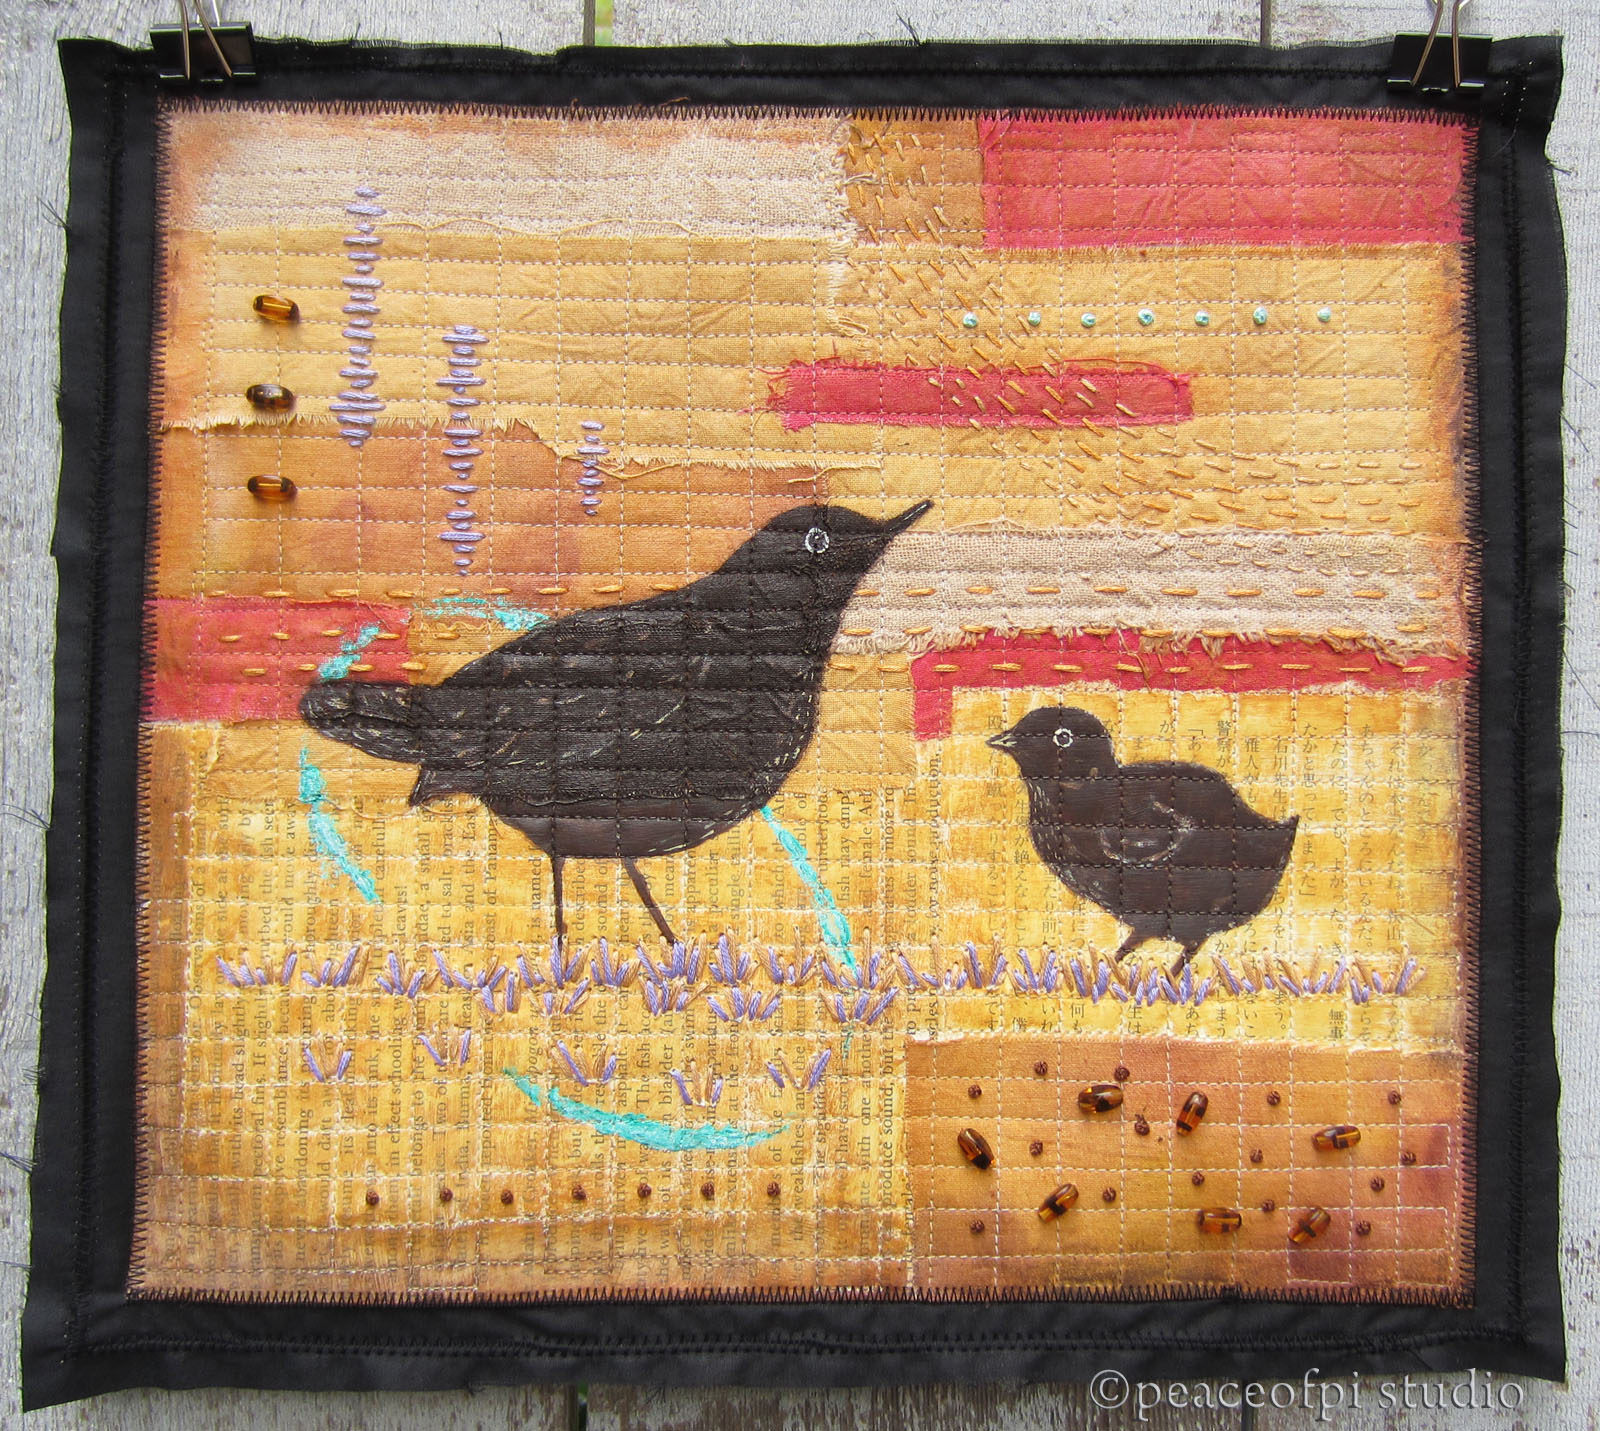 peaceofpi studio: Blackbirds Mixed Media Art Quilt